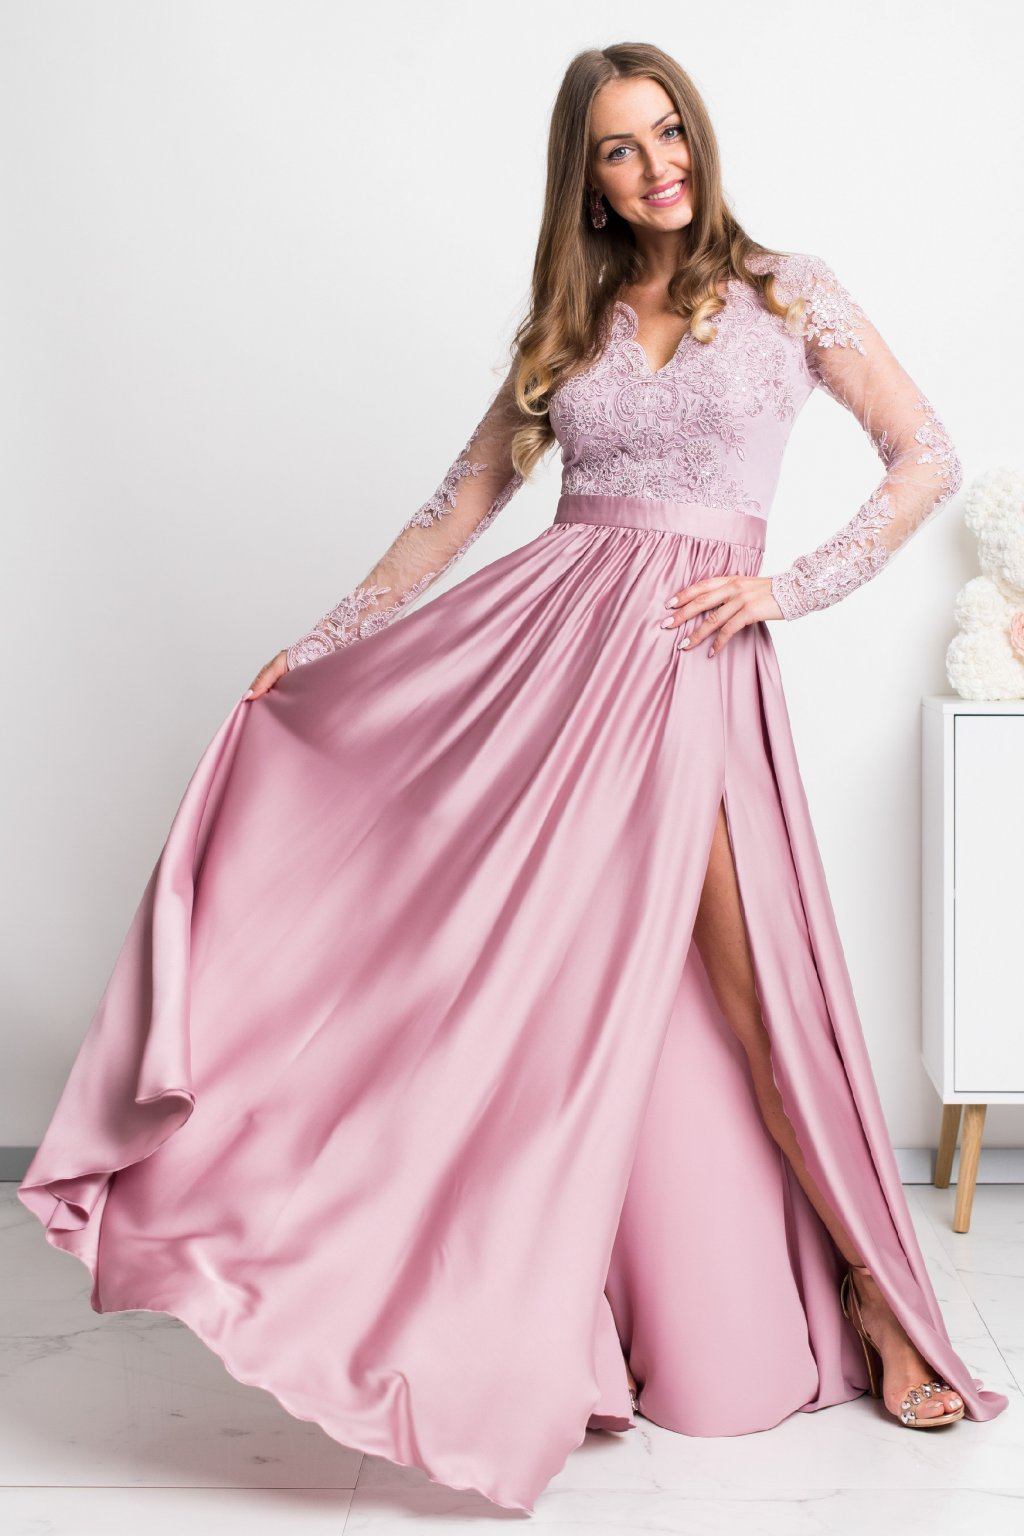 Dusty pink lace and satin formal dress